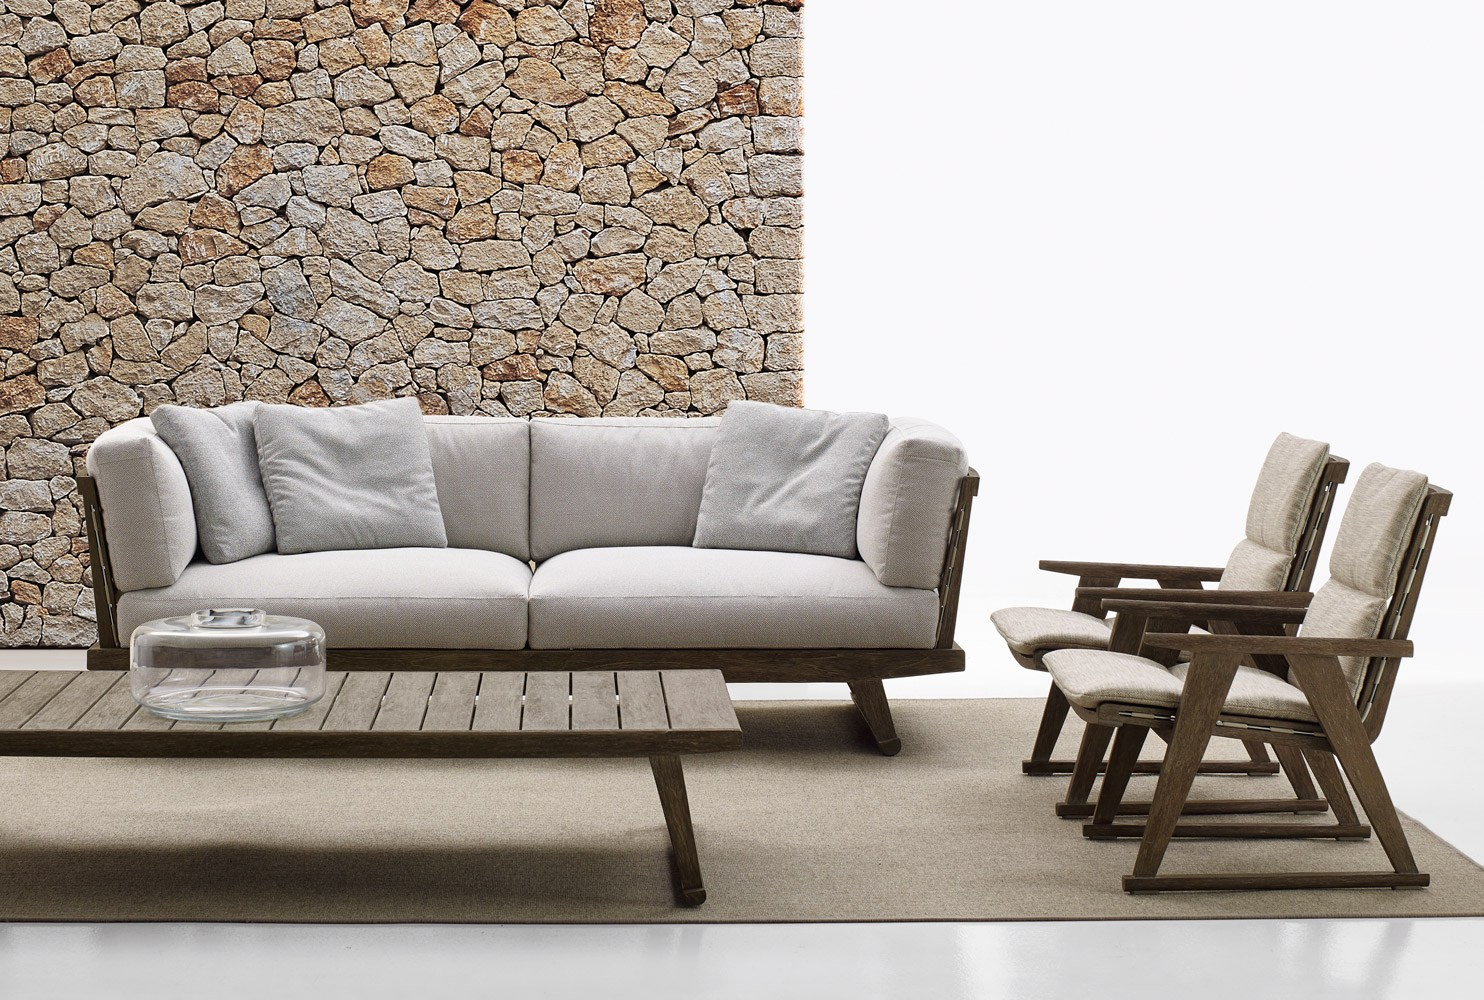 Gio table basse de jardin by b b italia outdoor a brand for Sofas resina exterior